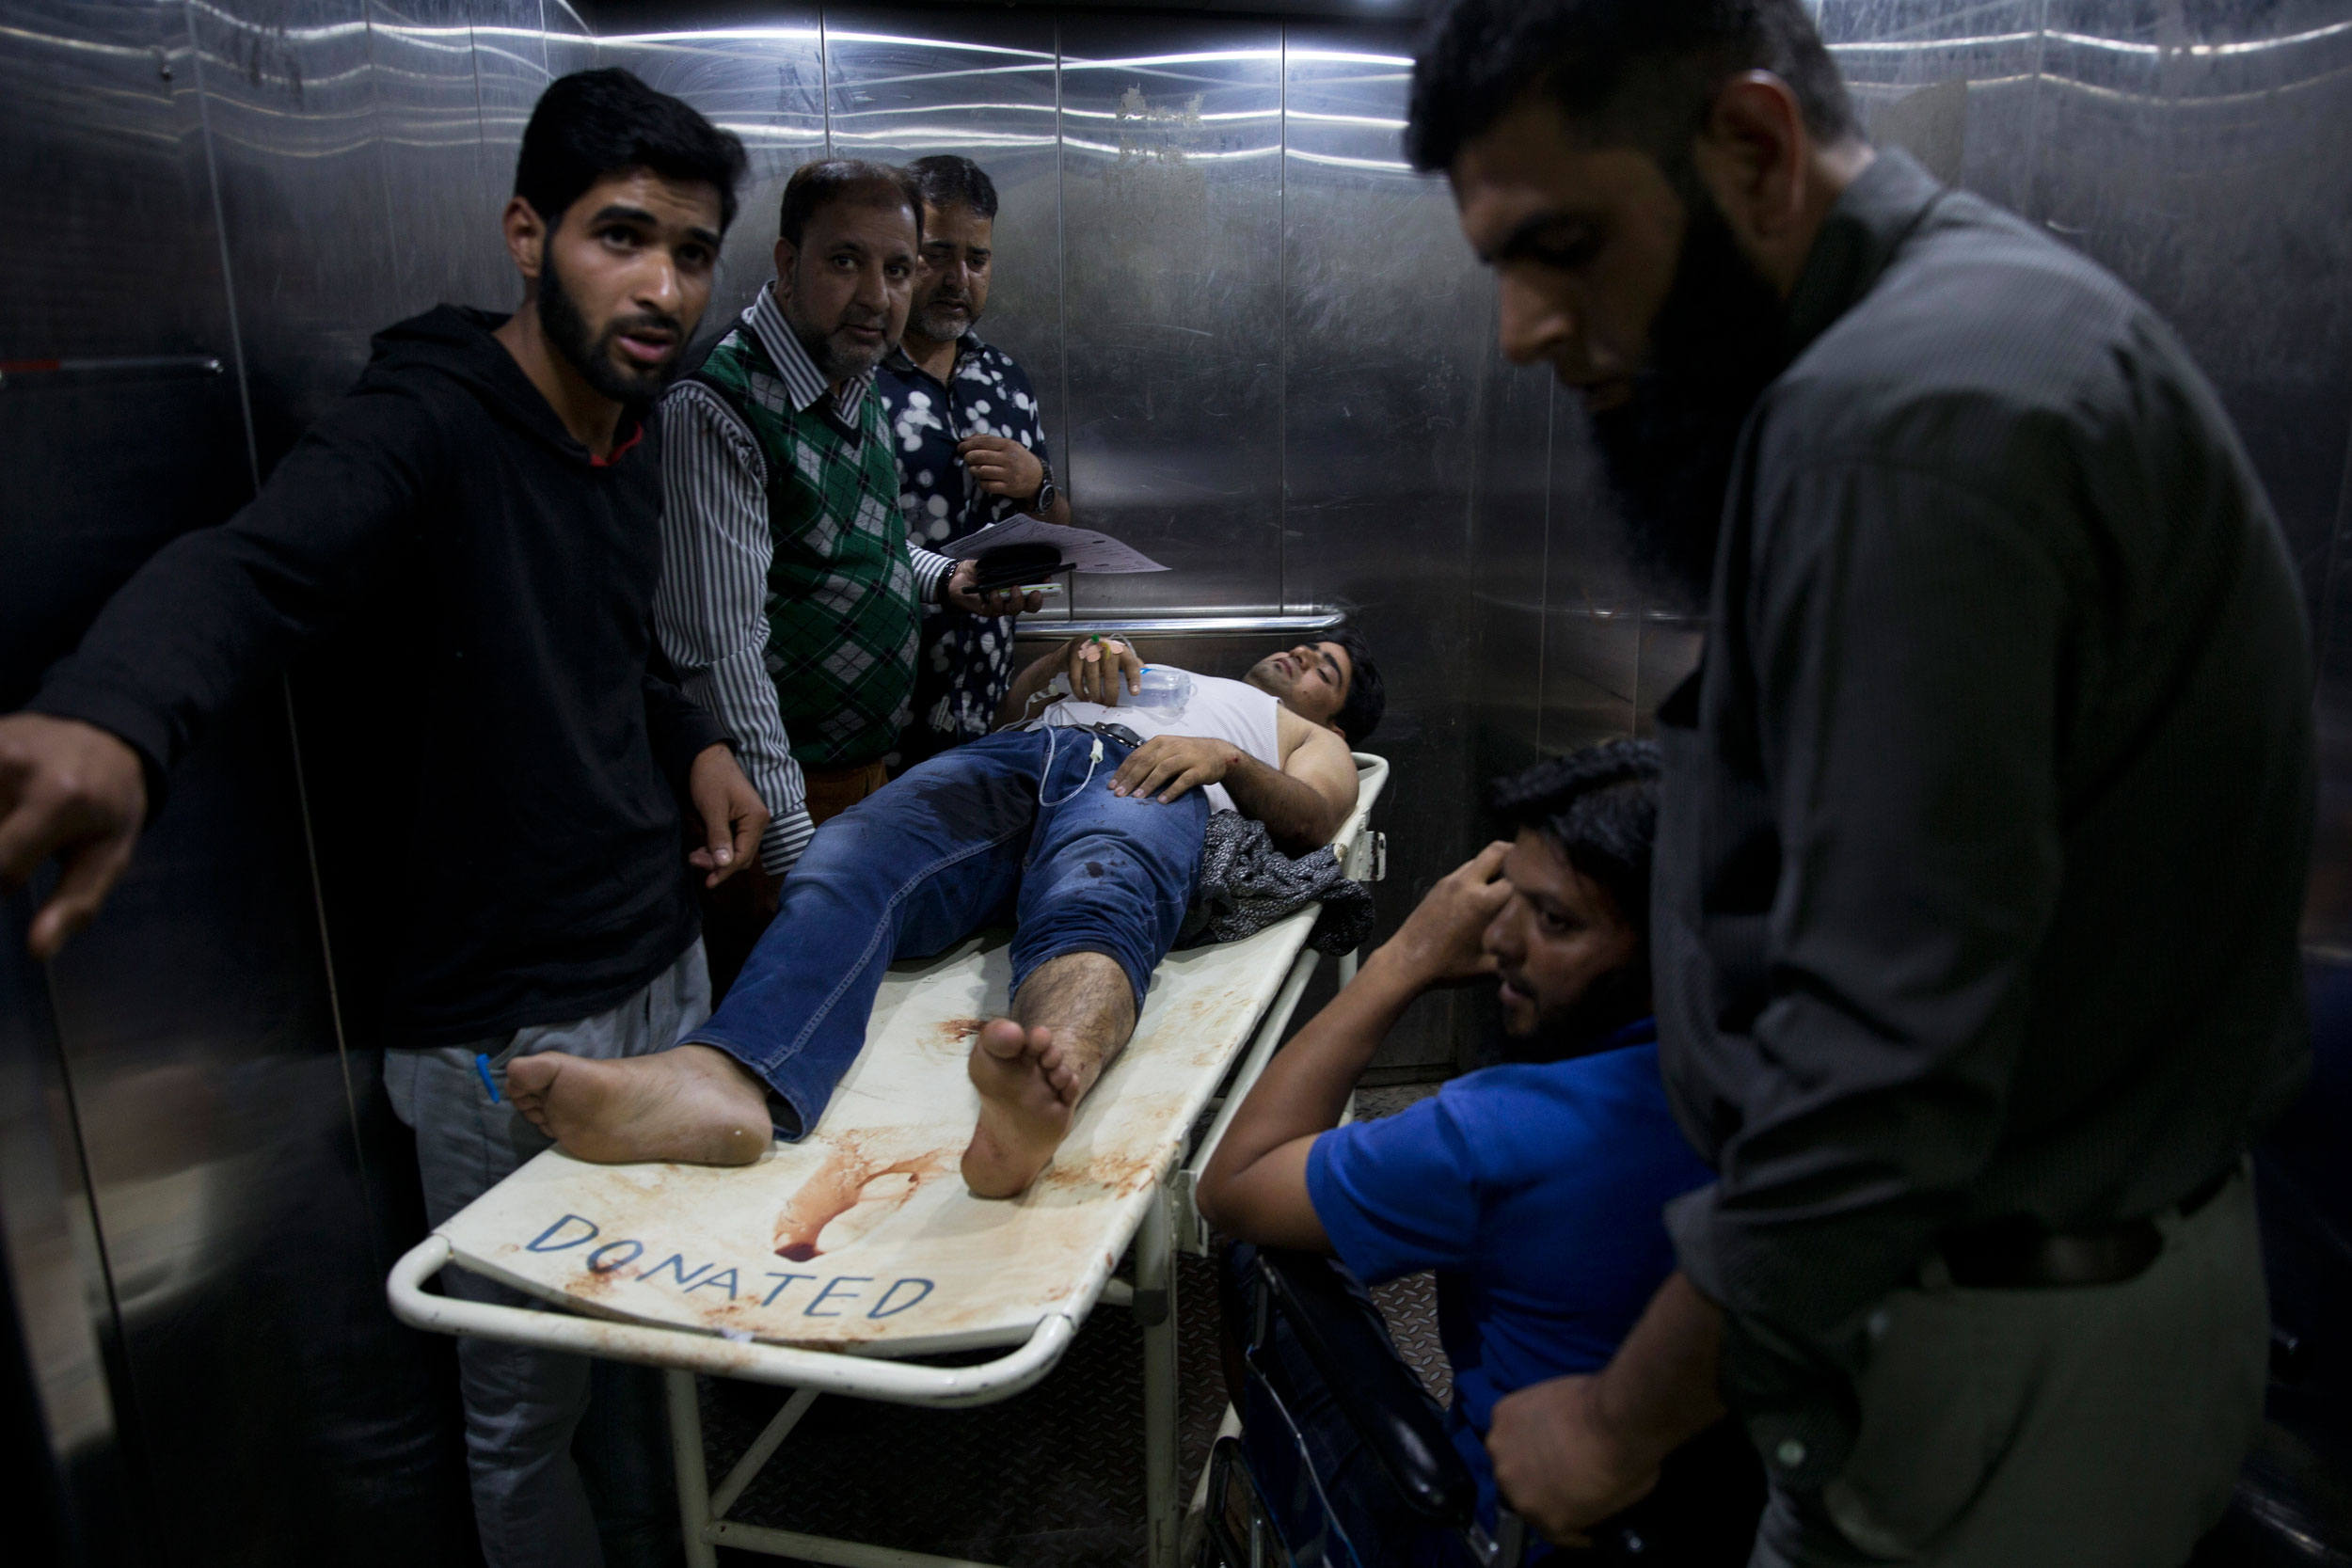 Kashmiris accompany a wounded man for treatment after an explosion in Srinagar on October 12, 2019.